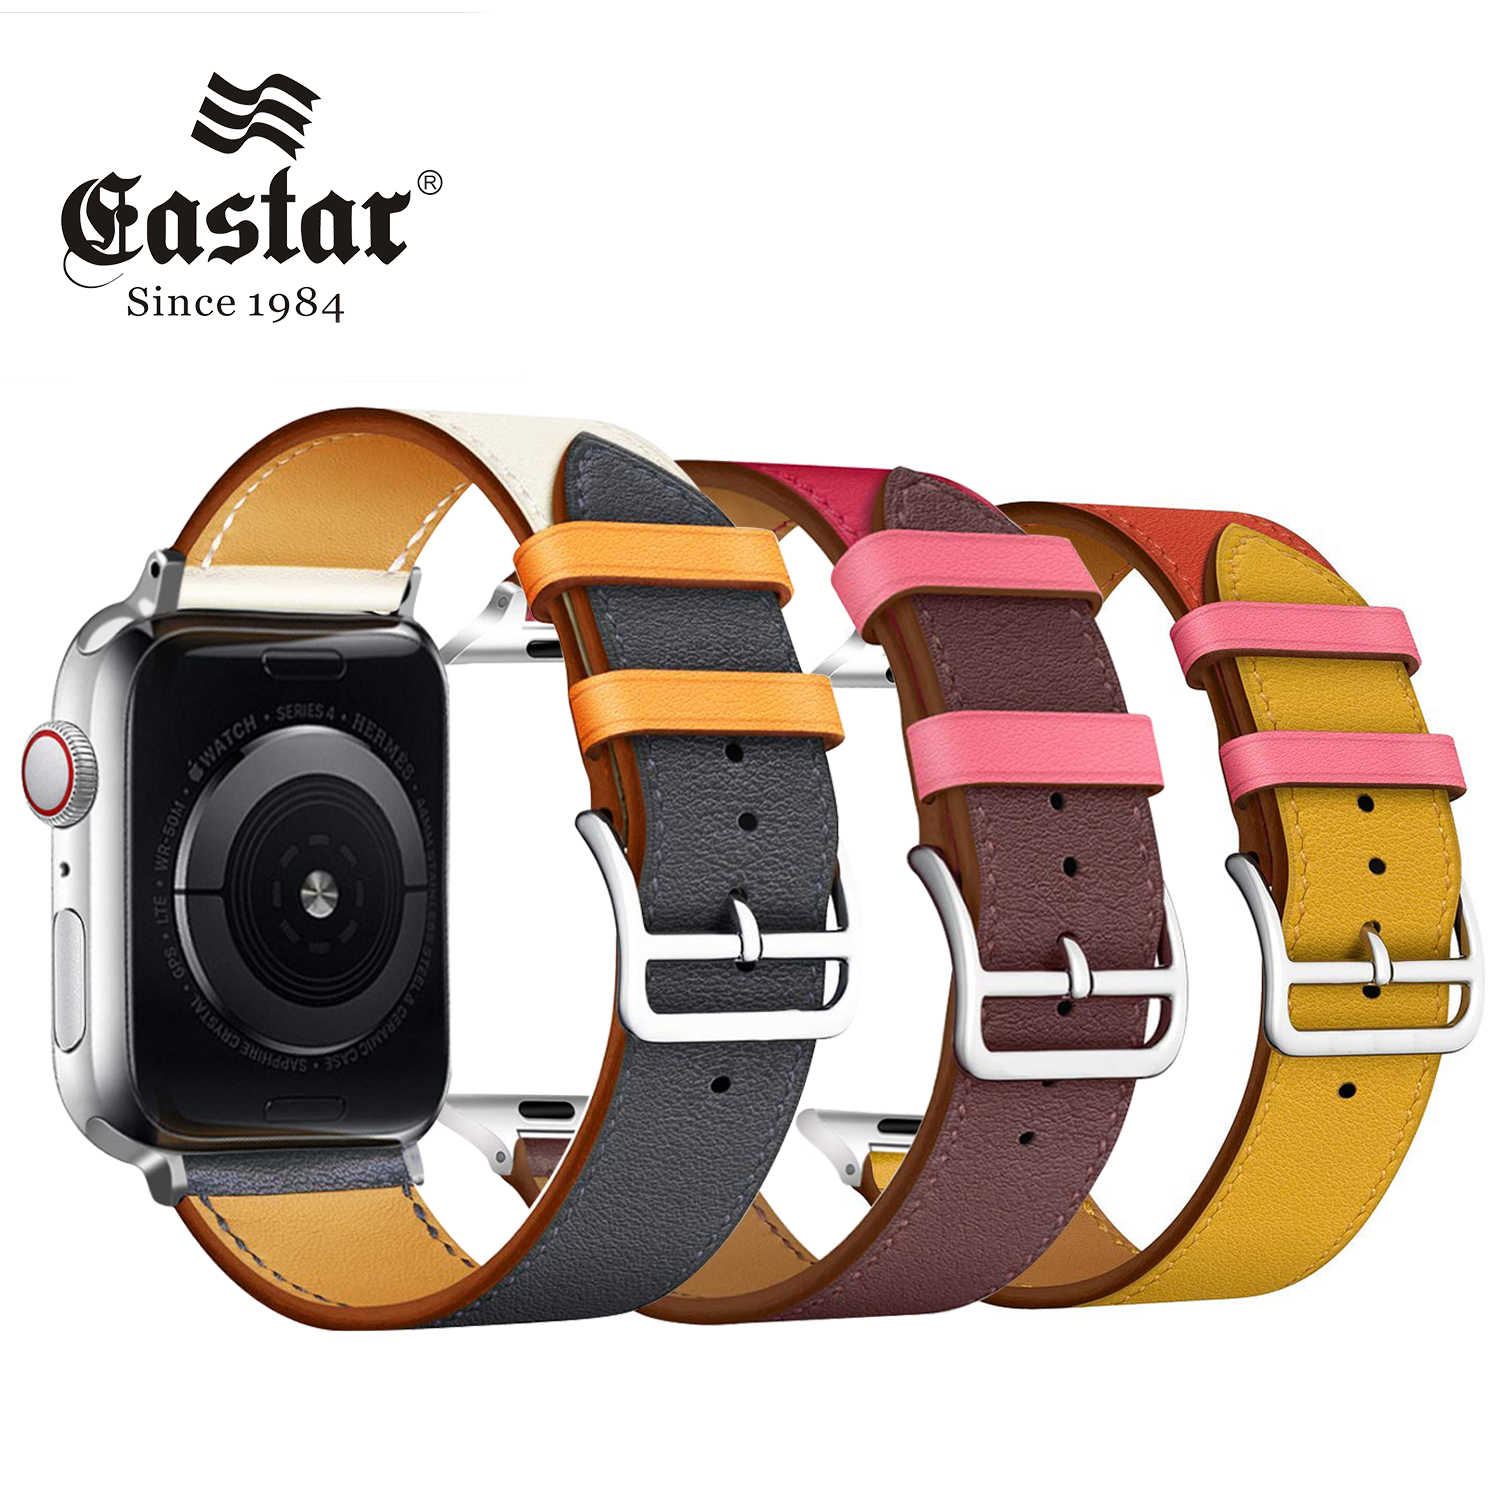 Eastar High quality Leather loop for Apple Watch Band Series 3/2/1 Sport Bracelet 42 mm 38 mm Strap For iwatch 4 Band 40mm 44mm